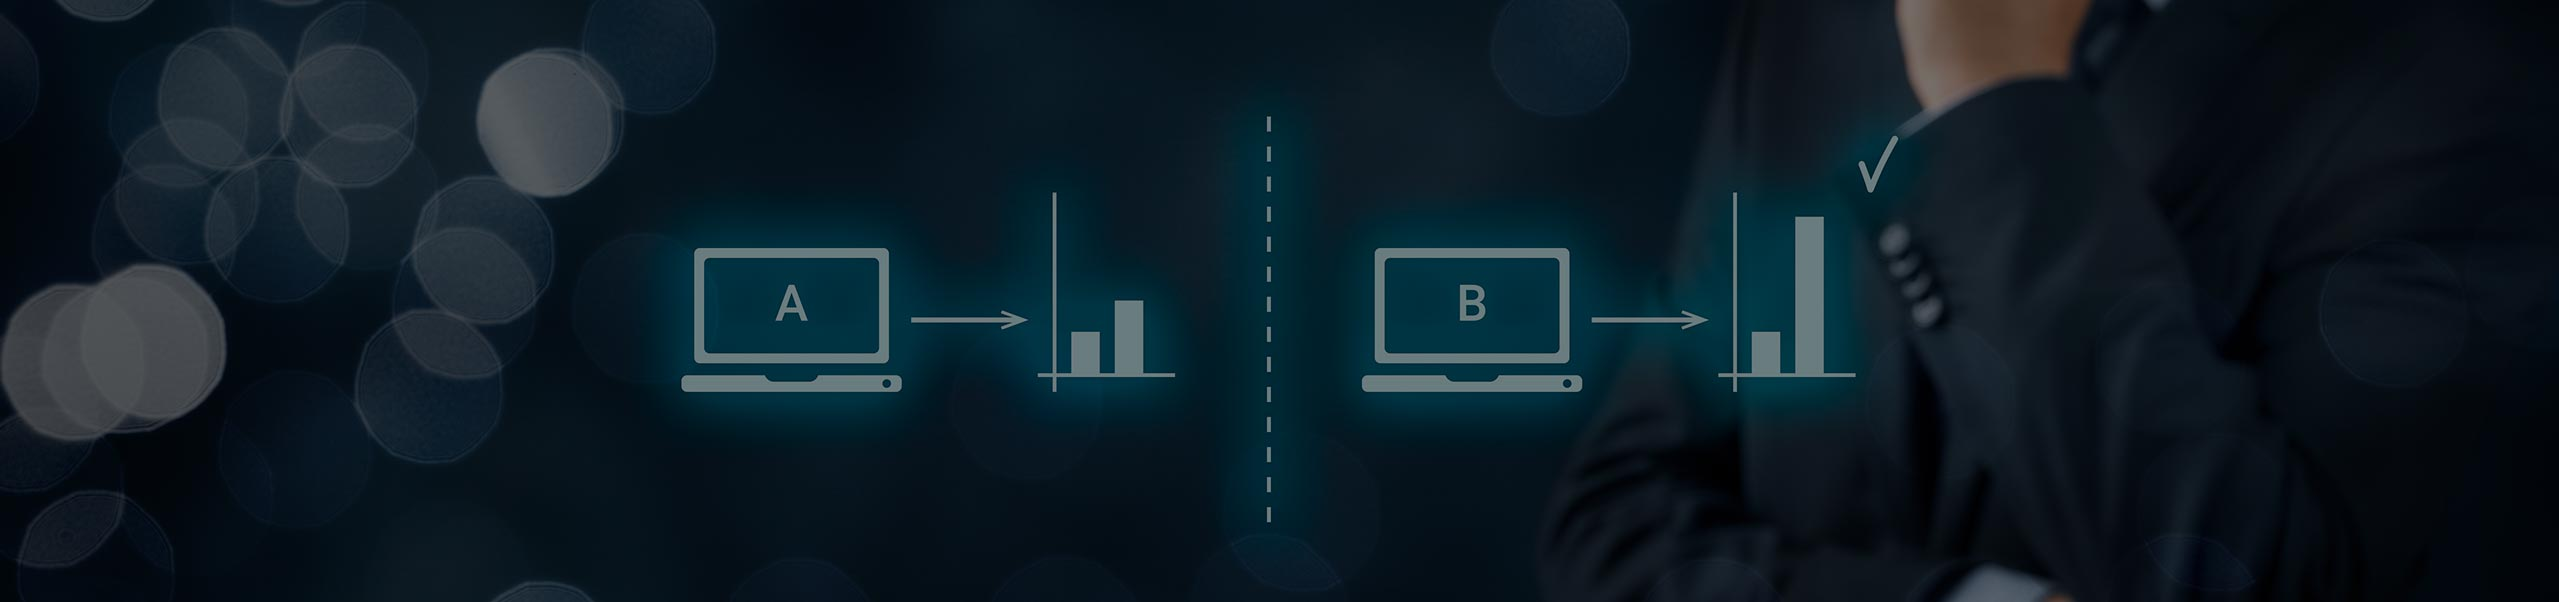 43 Awesome Ultraprecise, Proven AB Testing Tools